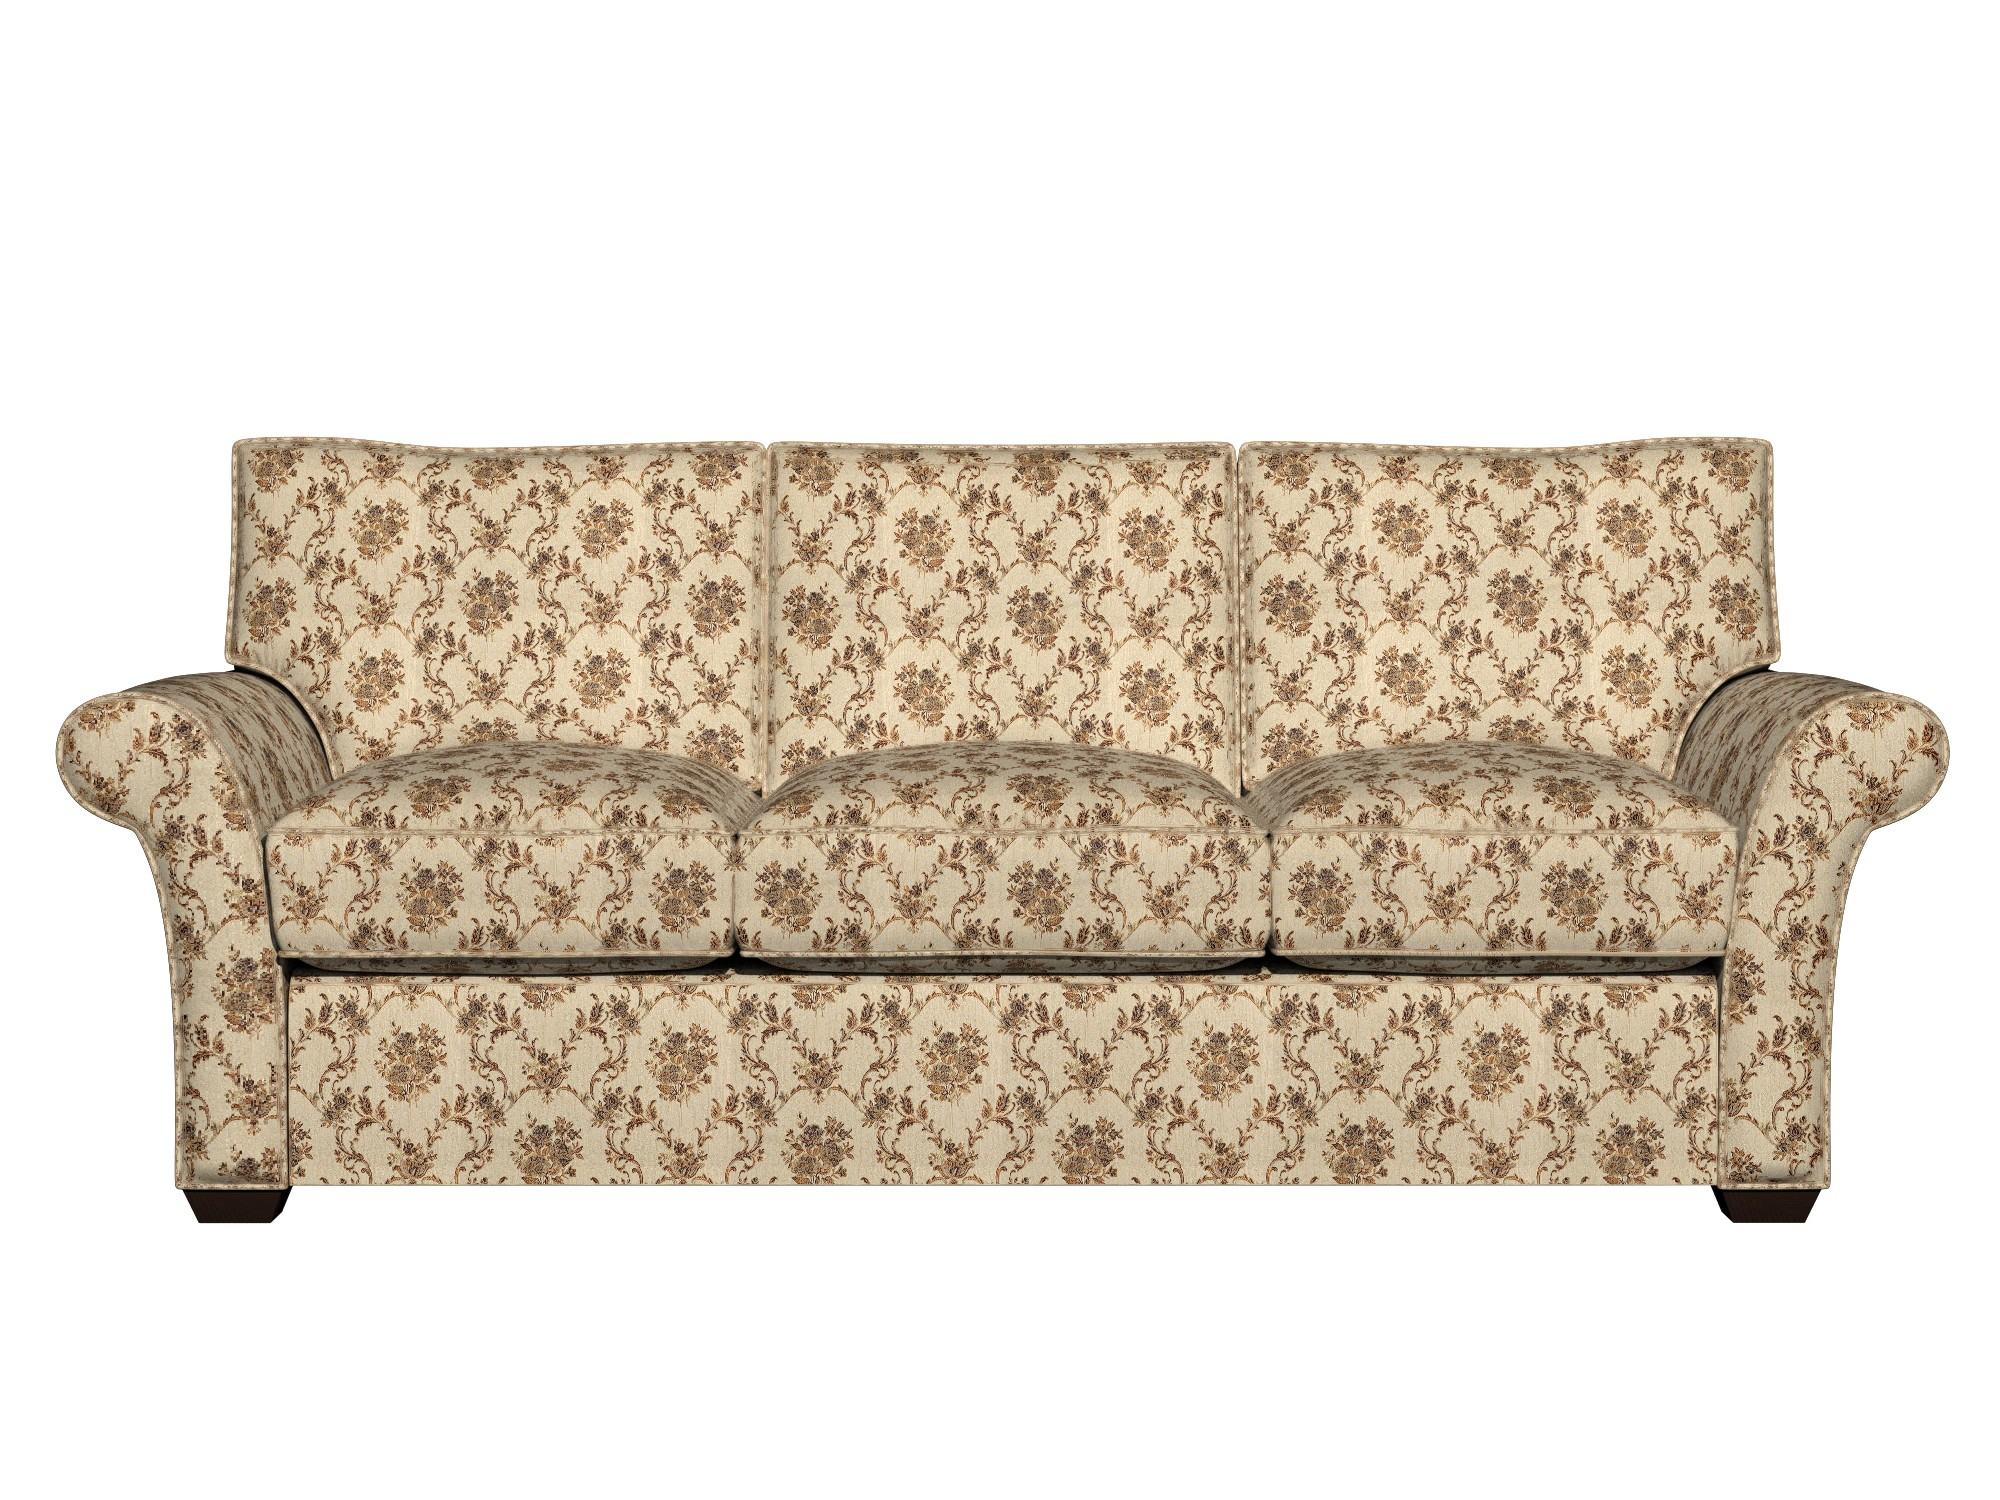 brocade sofa fabric side table ideas a0014e beige gold brown and ivory floral